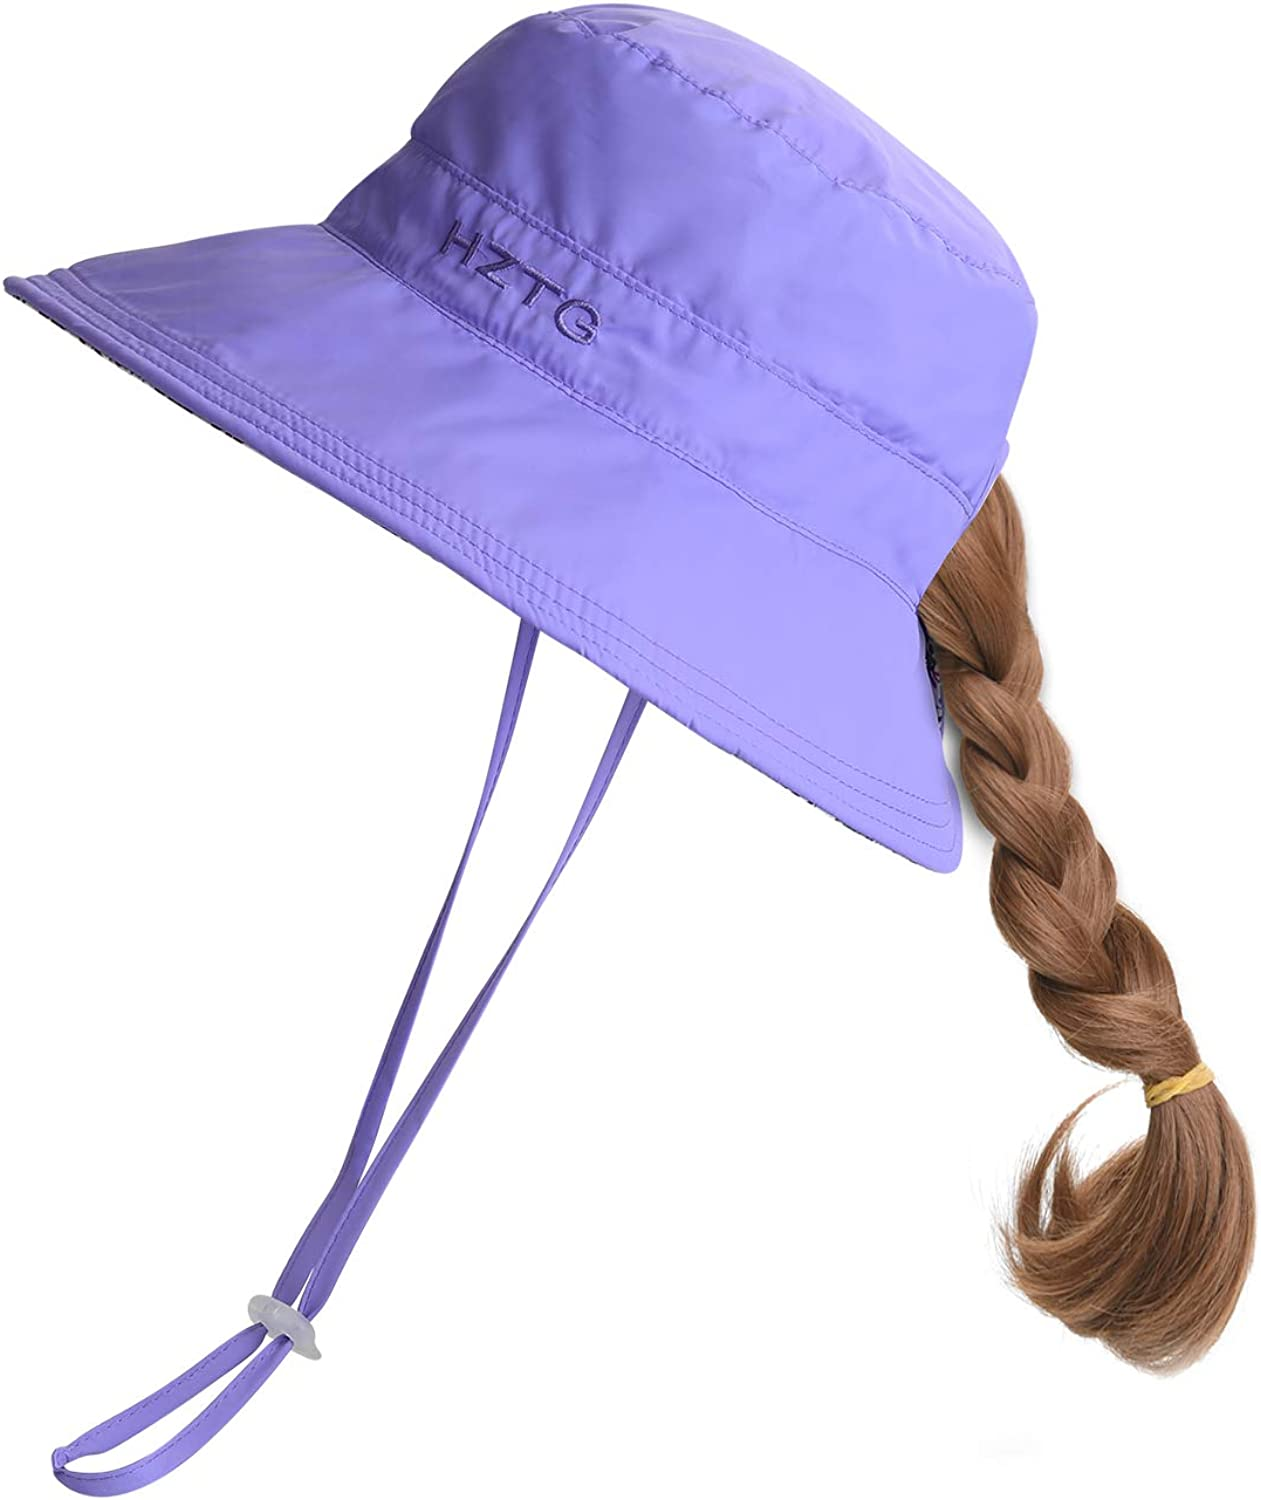 Protection Packable Beach Play Hat with Ponytail Hole Kids Girls Wide Brim Bucket Sun Hat UV50